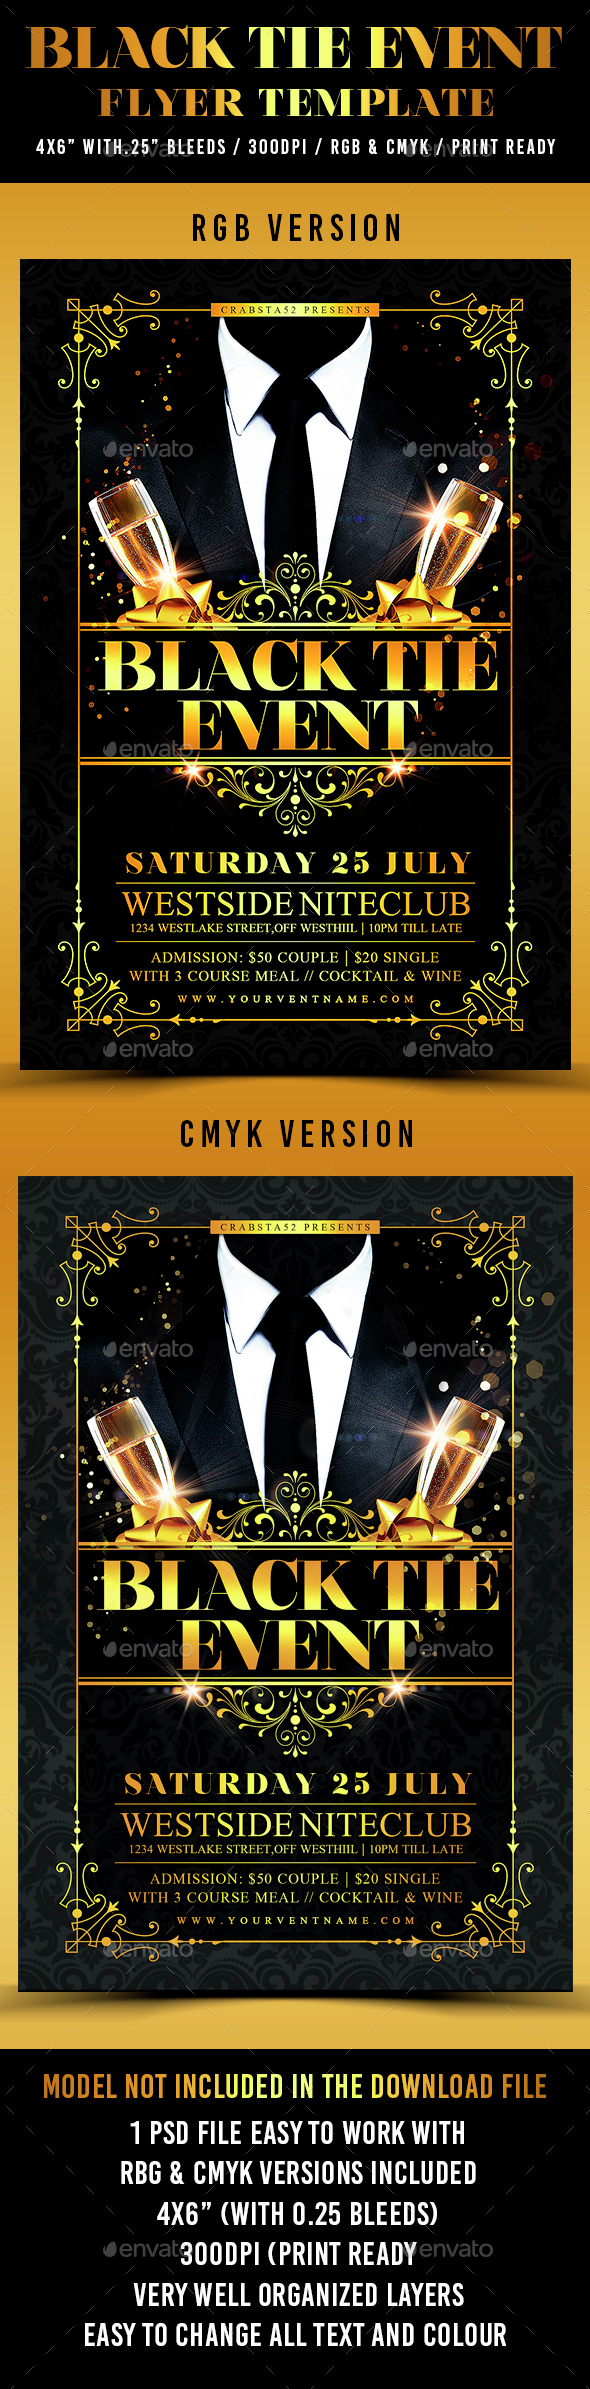 Black Tie Event Flyer Template - Clubs & Parties Events